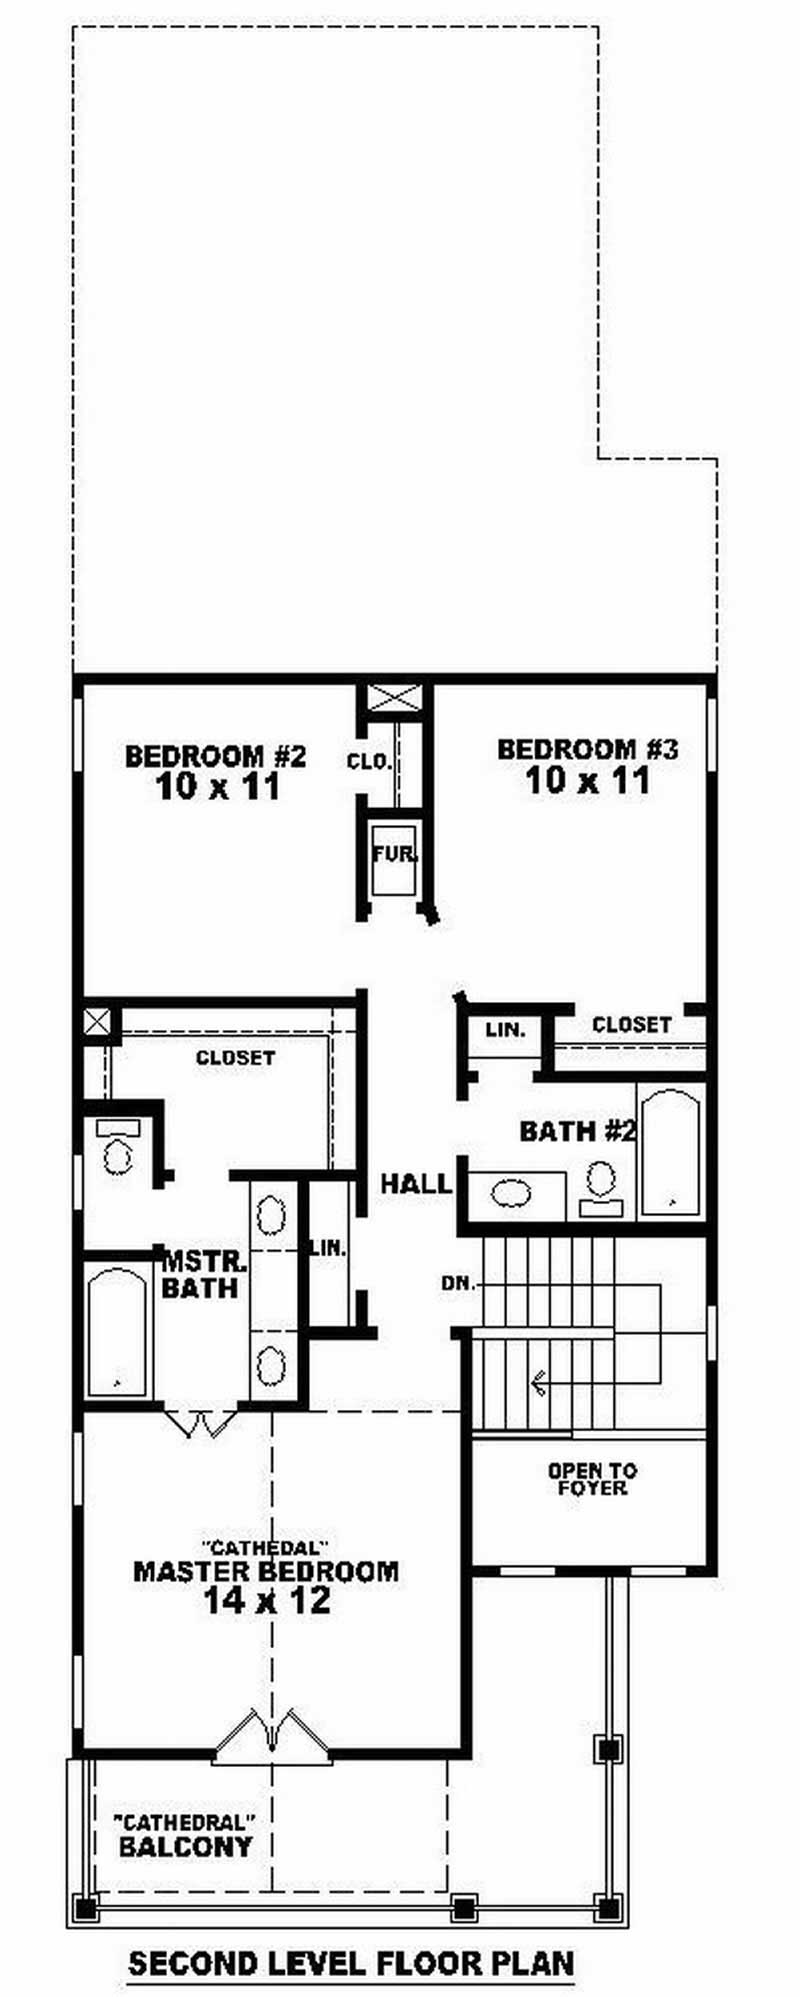 House Plan 170 2880 3 Bedroom 1670 Sq Ft Coastal Cape Cod Home Tpc